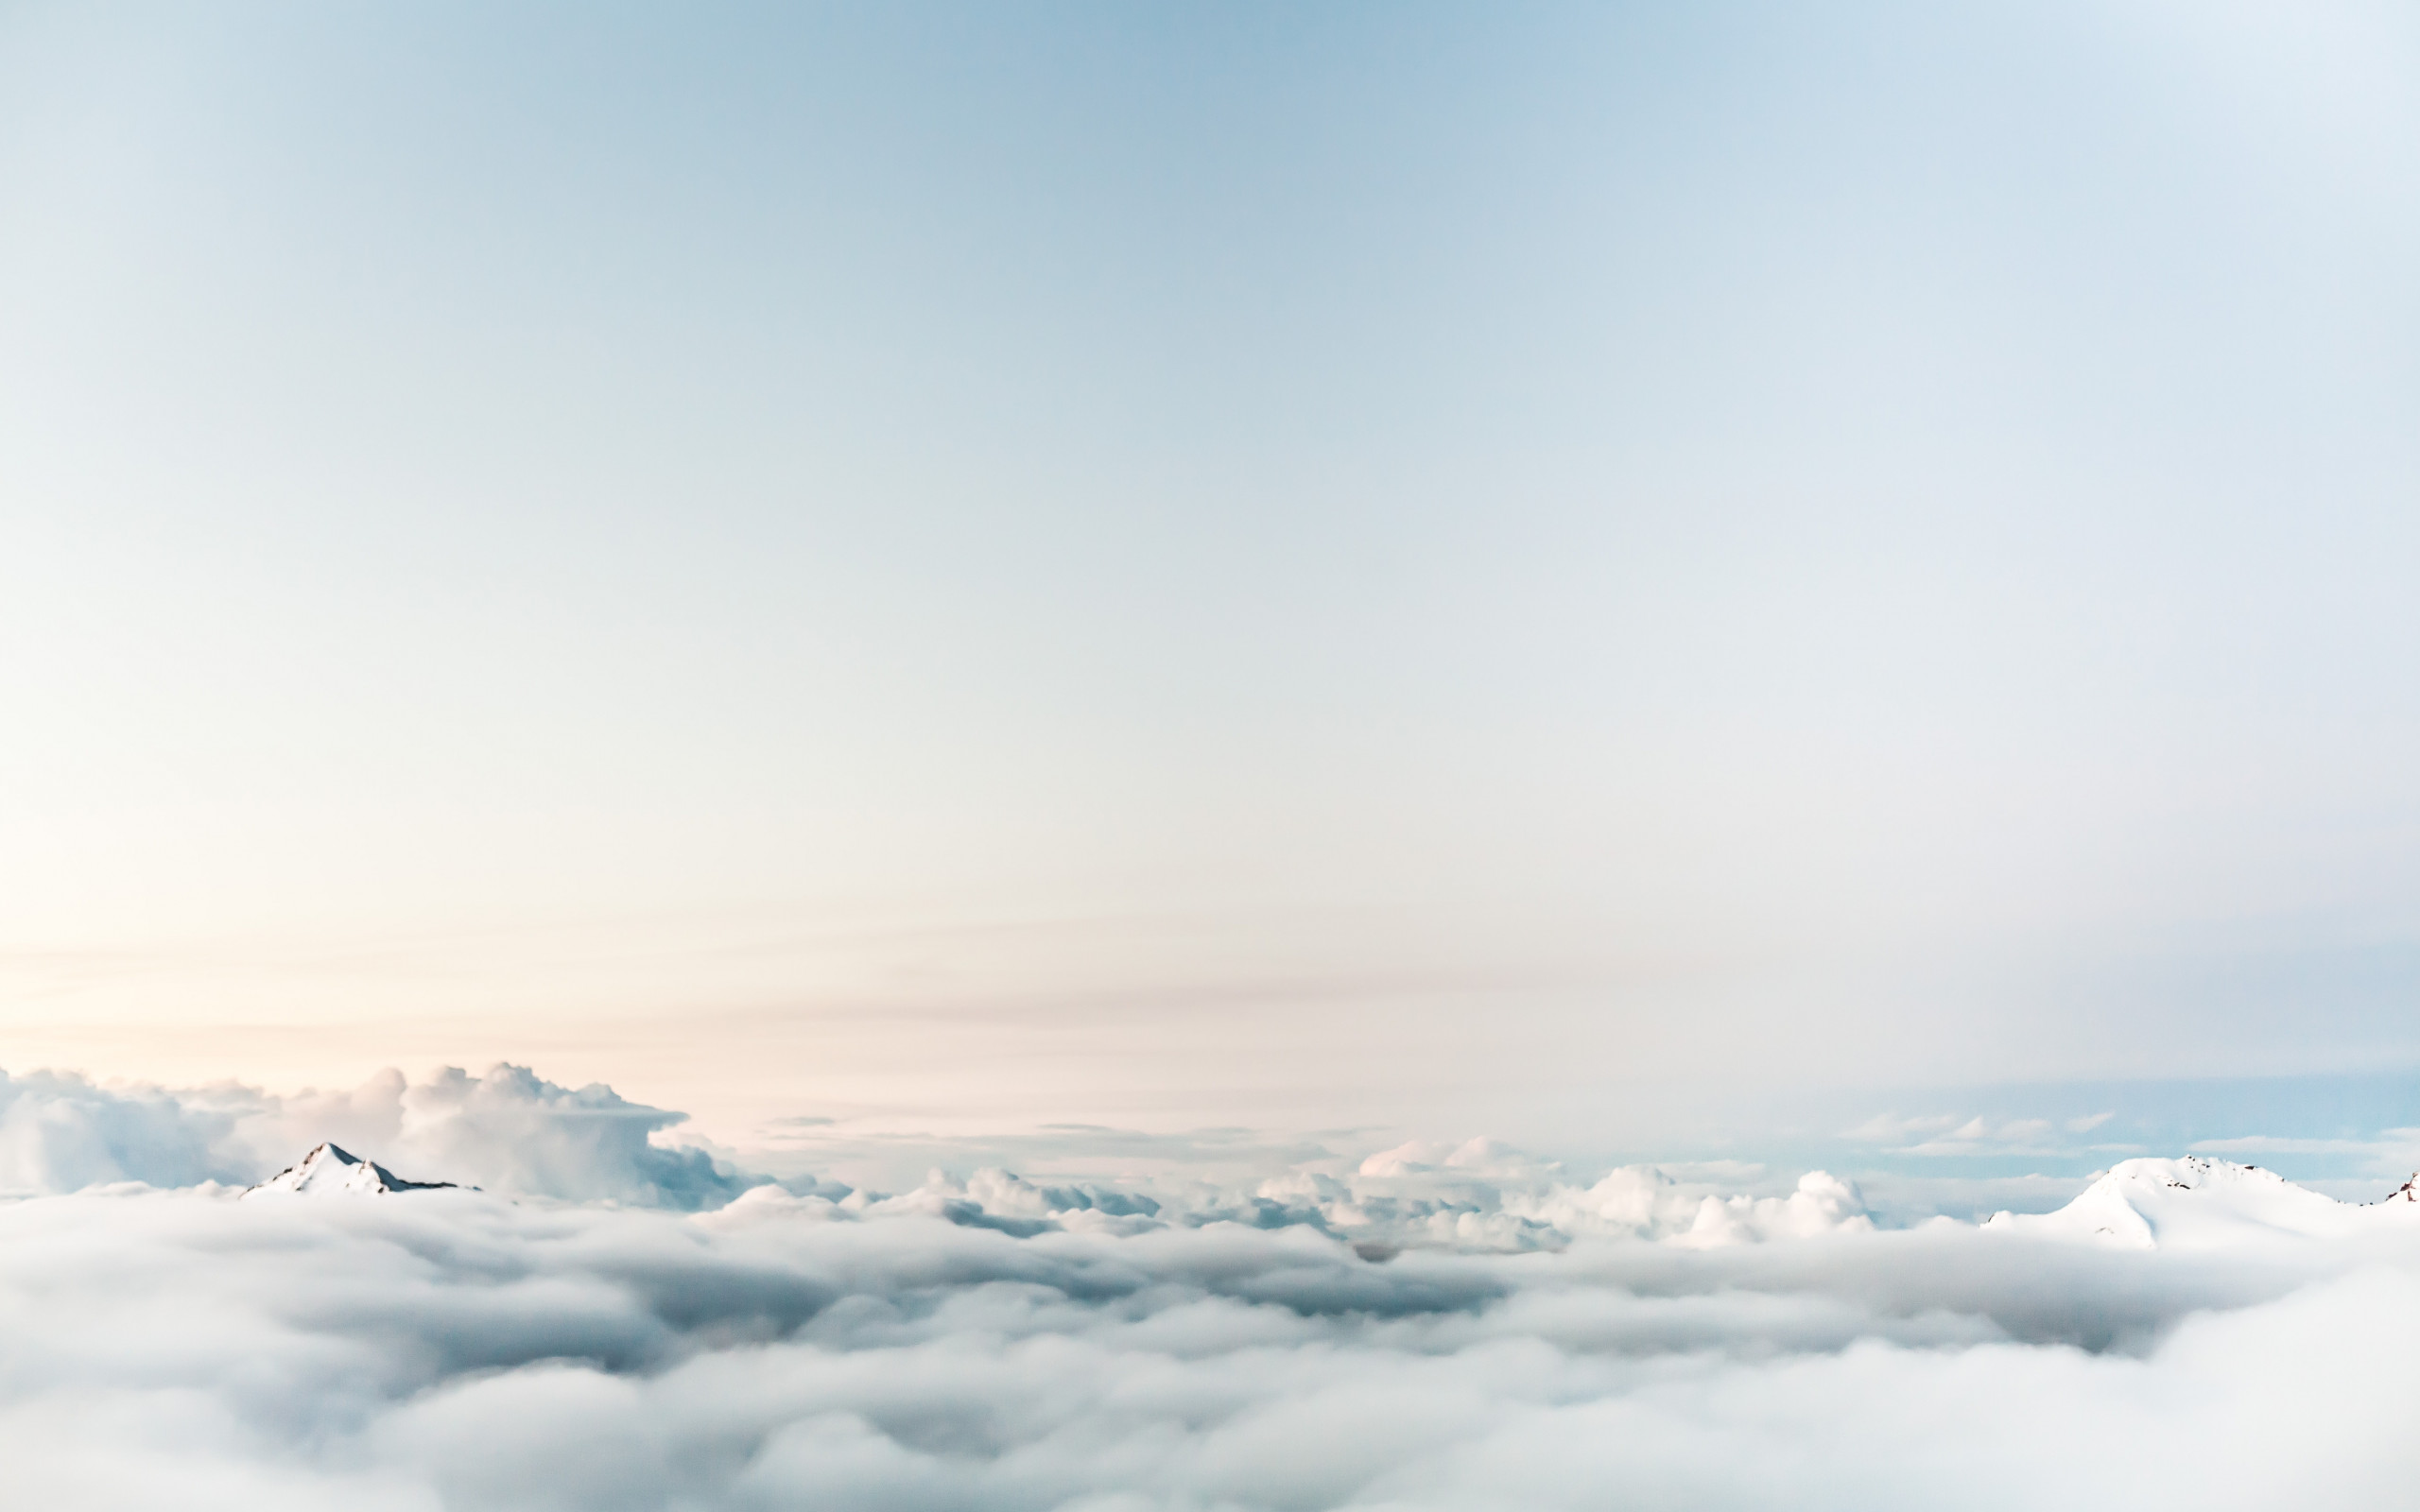 Floating on clouds wallpaper 2560x1600